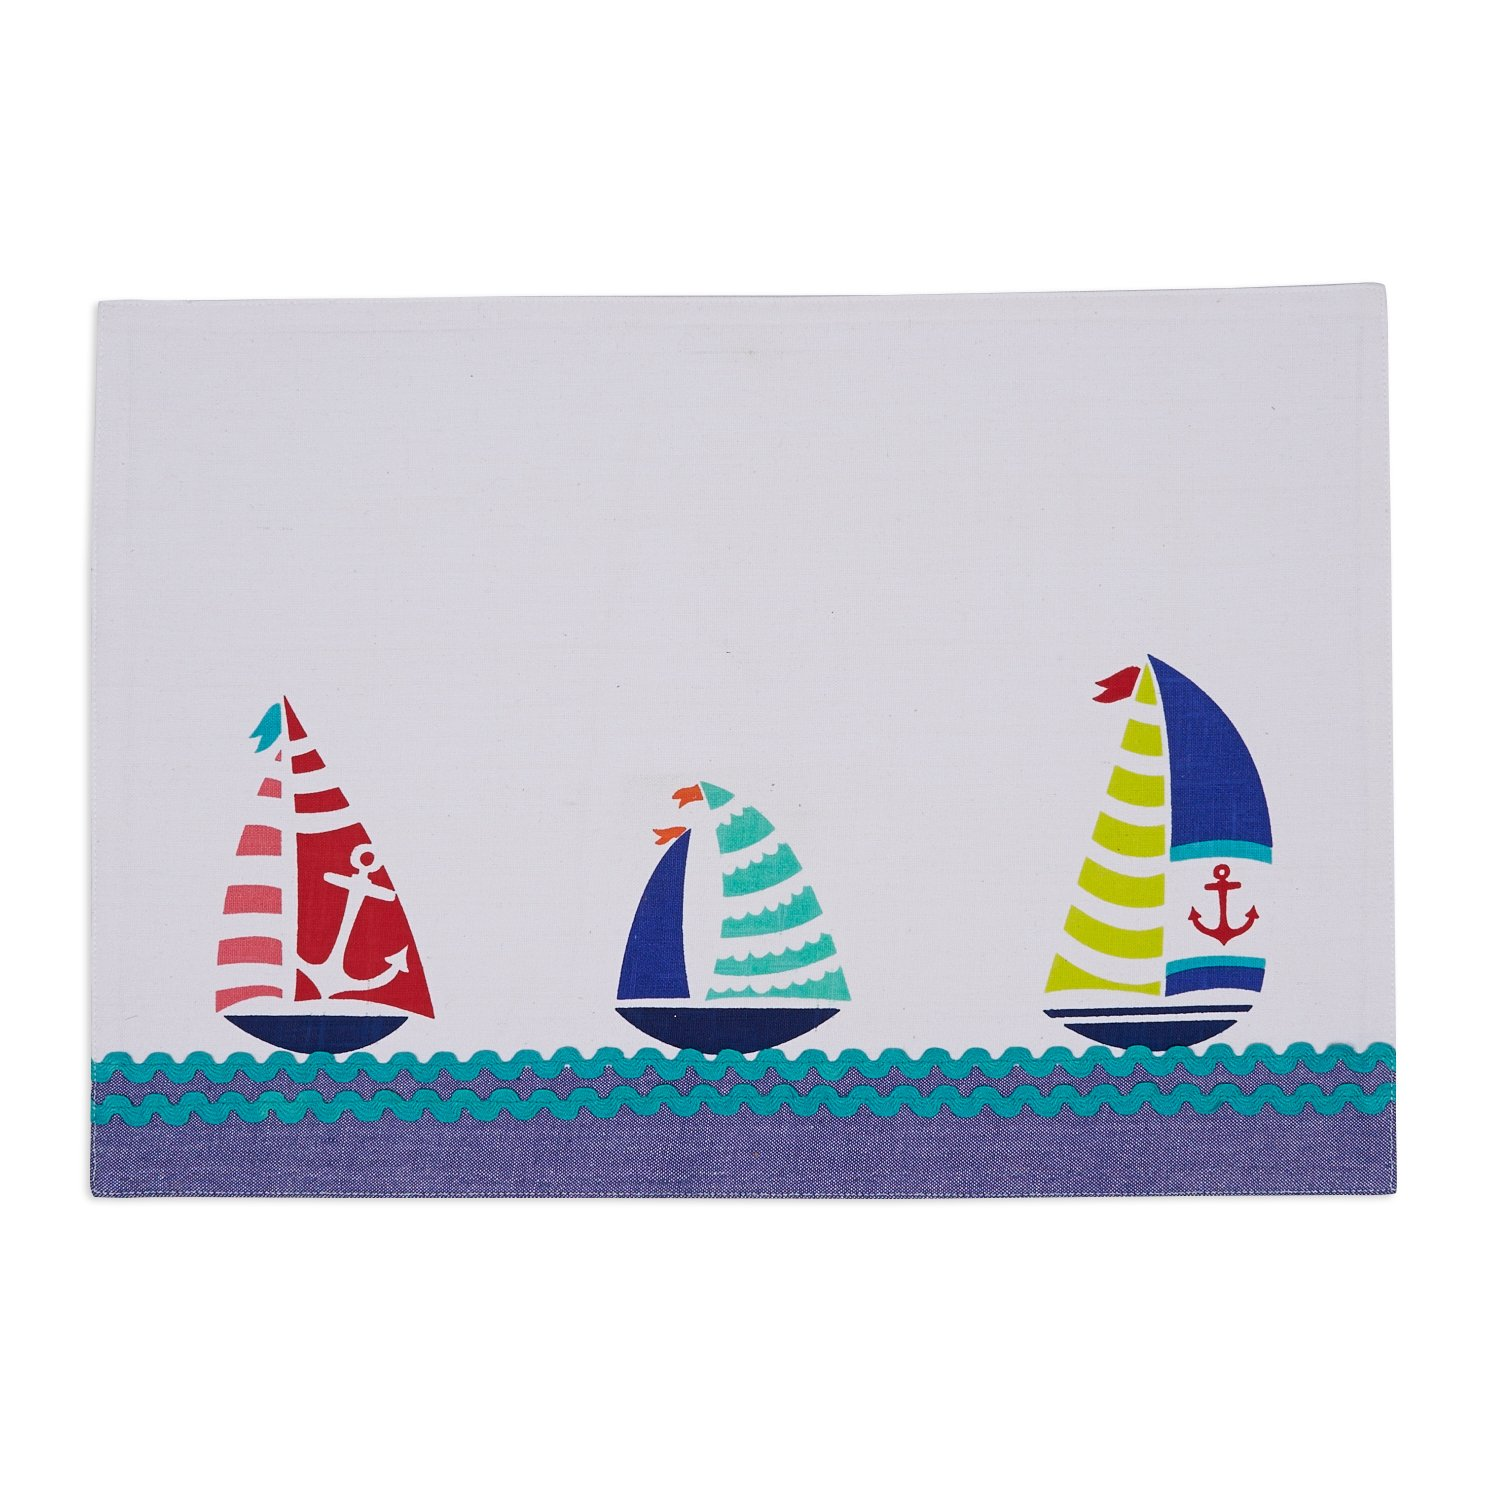 DII 100% Cotton, 13x 19 Everyday Basic Placemat Set of 6, 13x19, Sailboats Embroidered